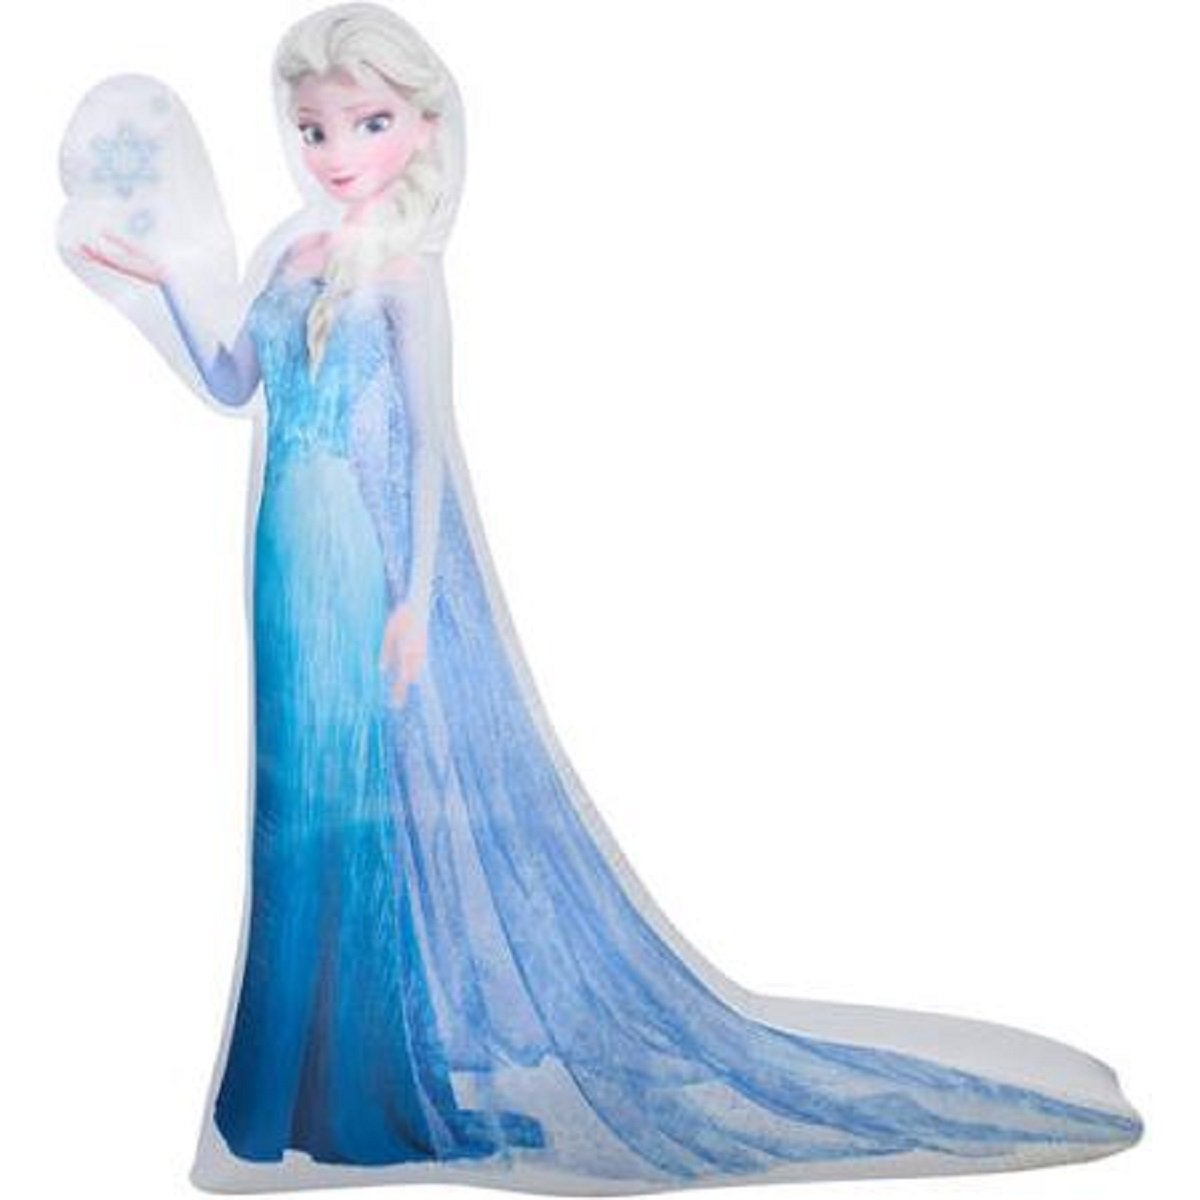 amazoncom christmas inflatable 5 led photoreal elsa disney frozen outdoor yard decoration garden outdoor - Disney Inflatable Christmas Decorations